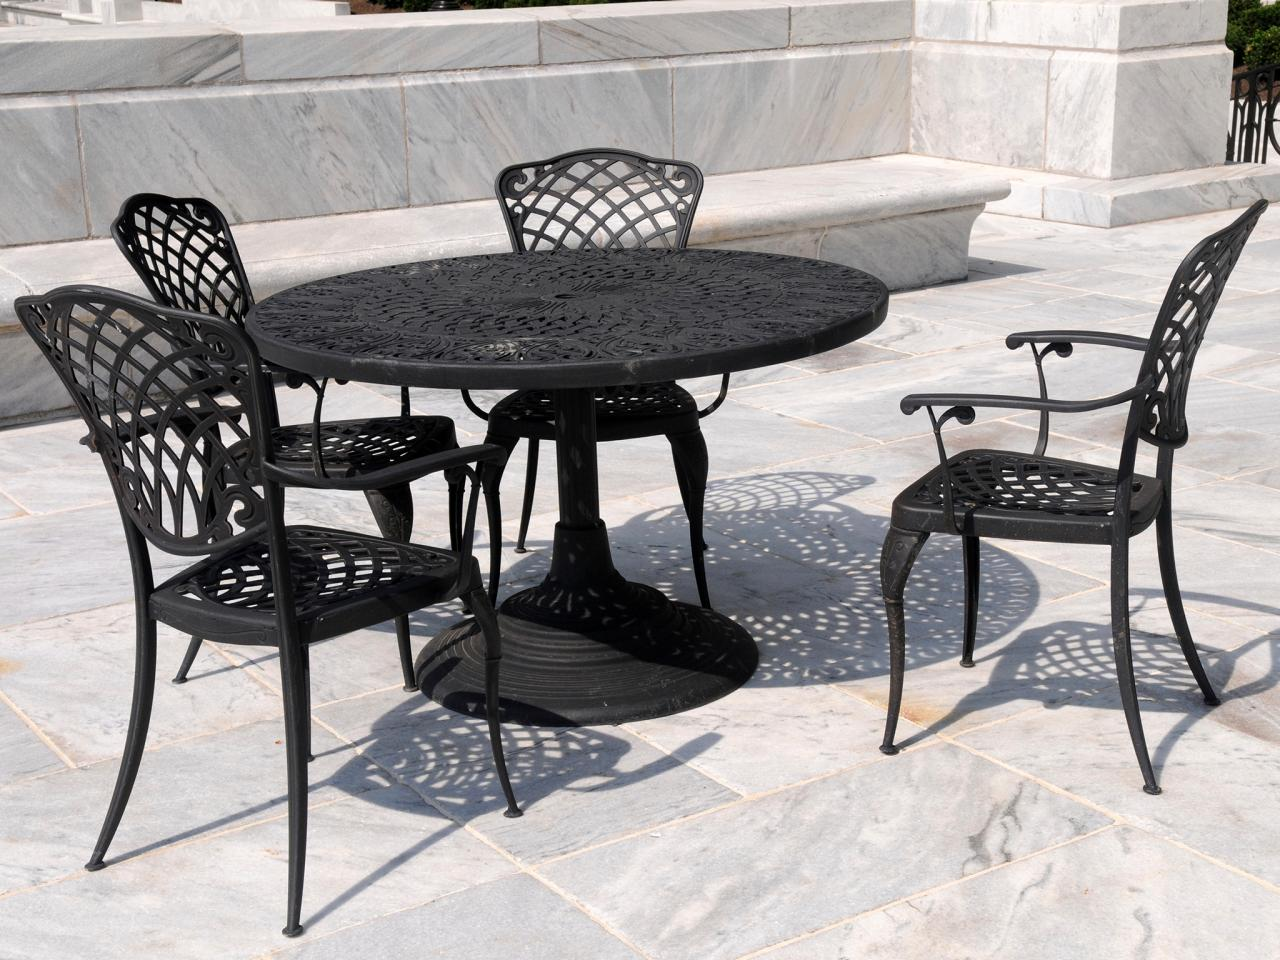 Delightful Wrought Iron Patio Furniture Amazing Ideas